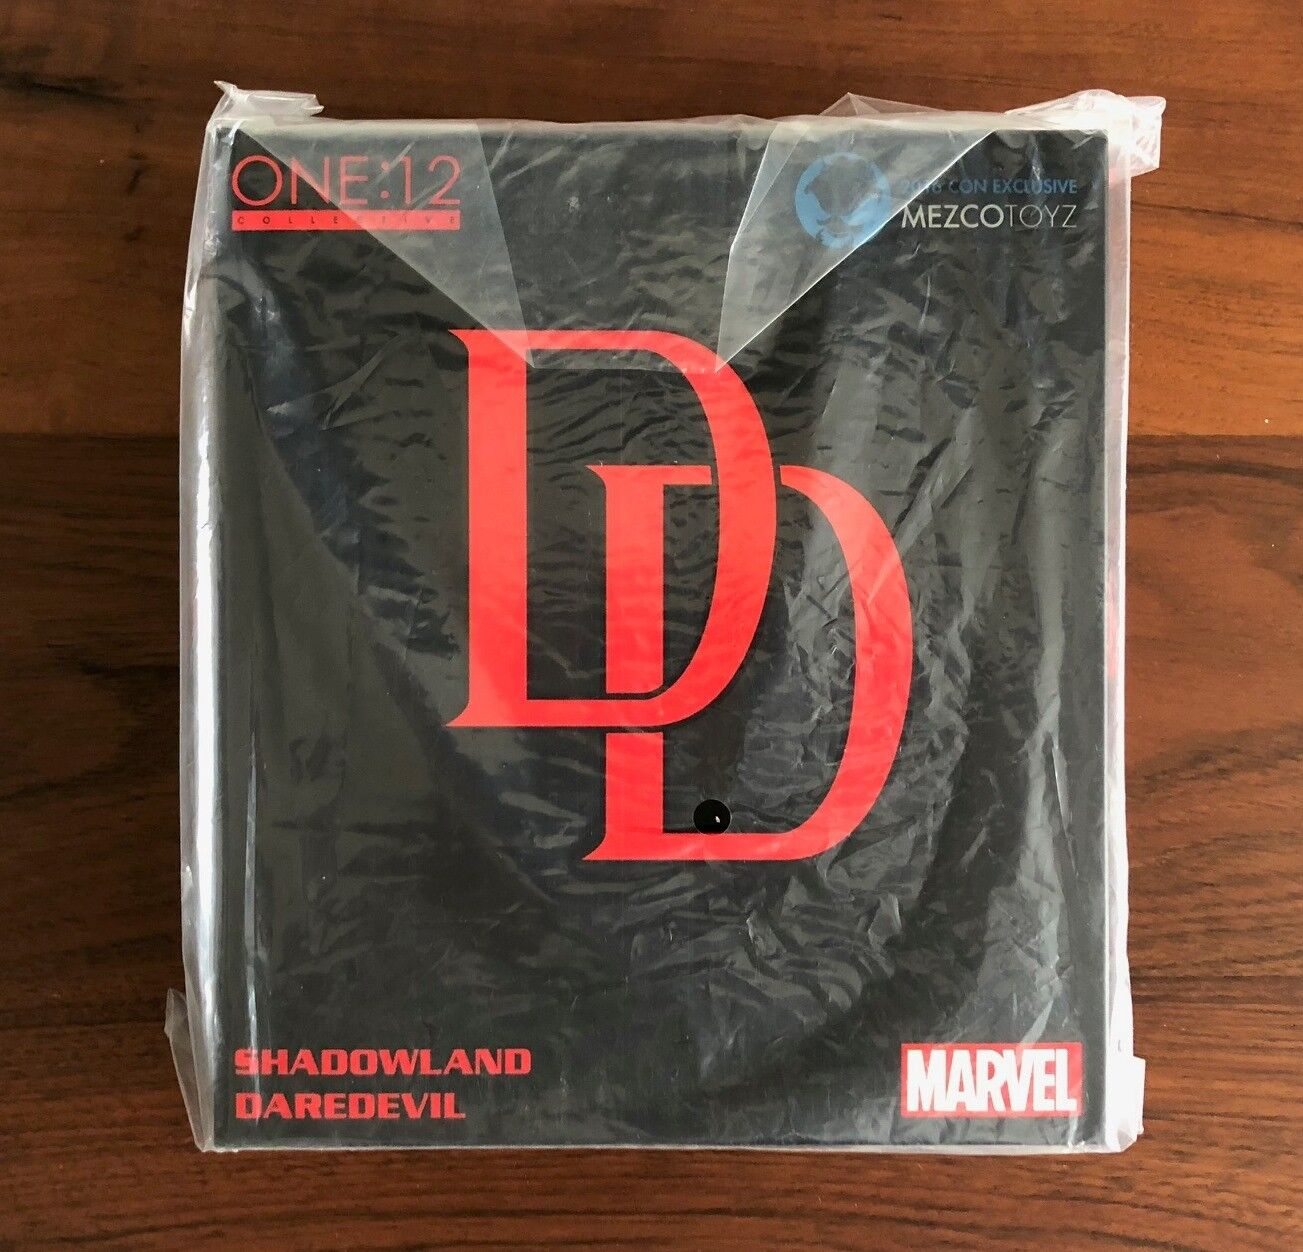 Mezco Toyz One 12 Collective Daredevil Shadowland 2016 NYCC Exclusive 1 12 Scale